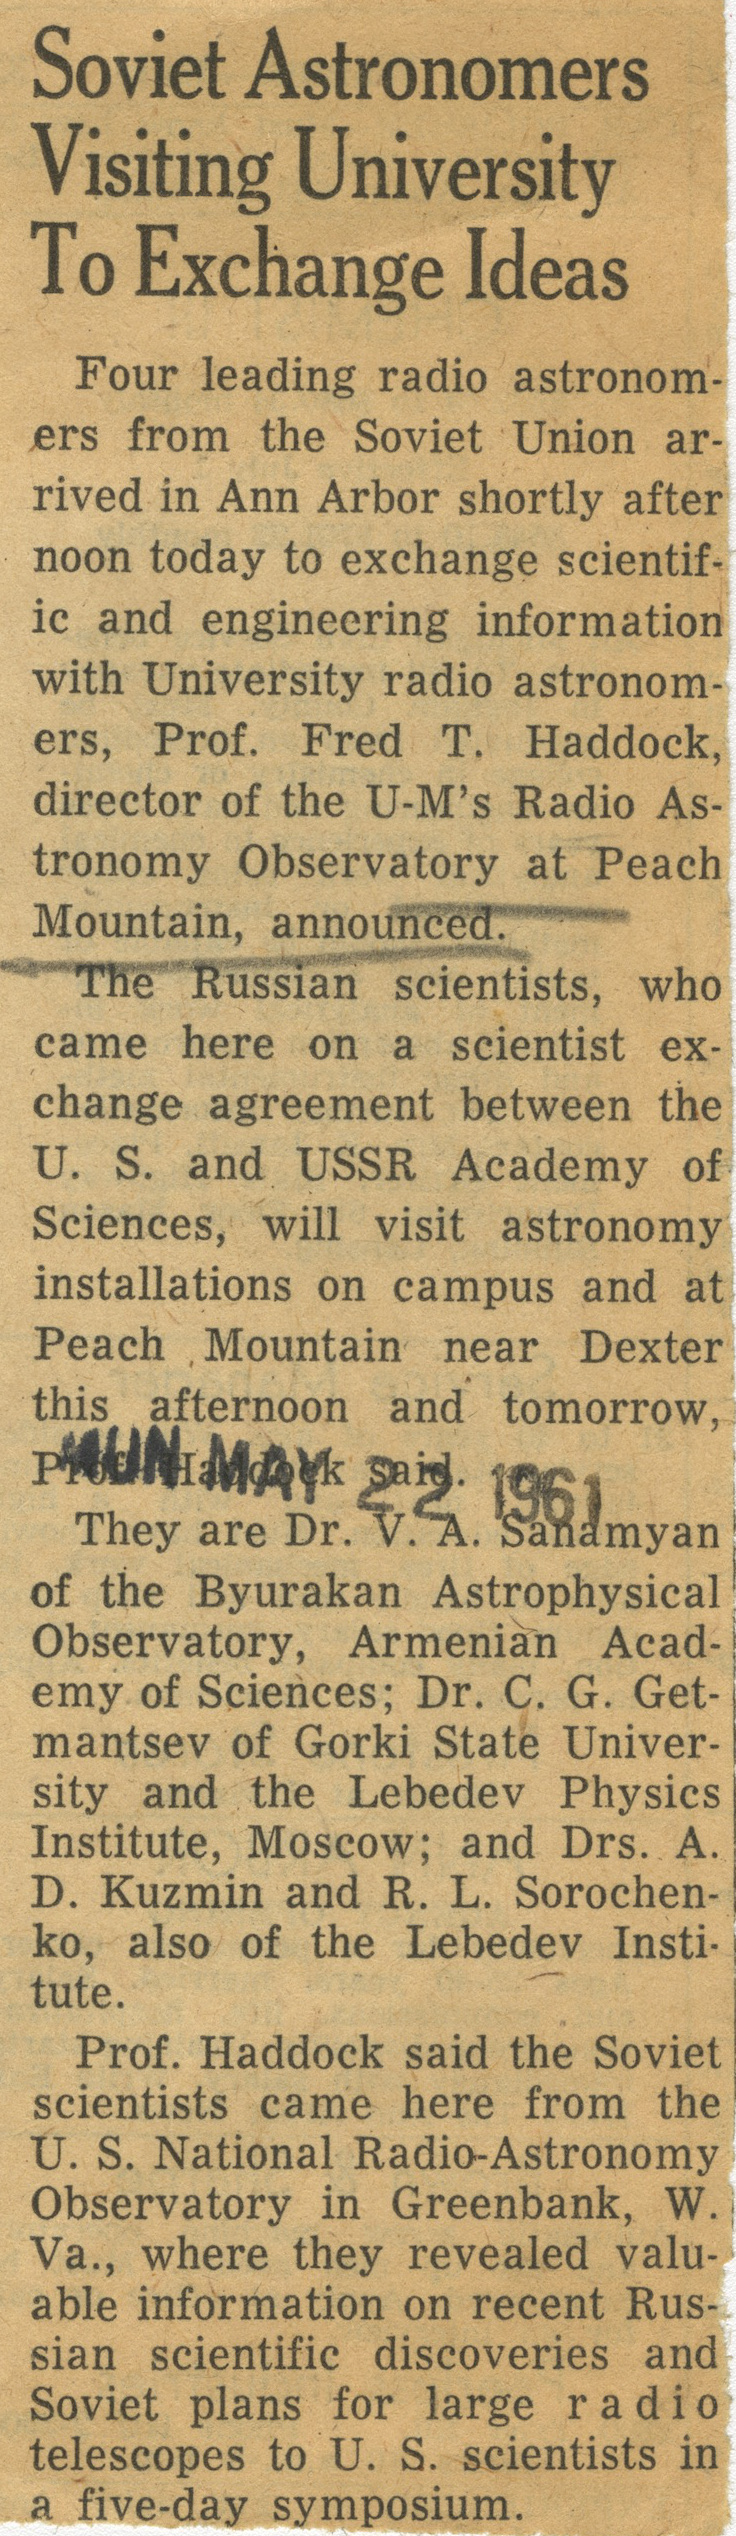 Soviet Astronomers Visiting University To Exchange Ideas image